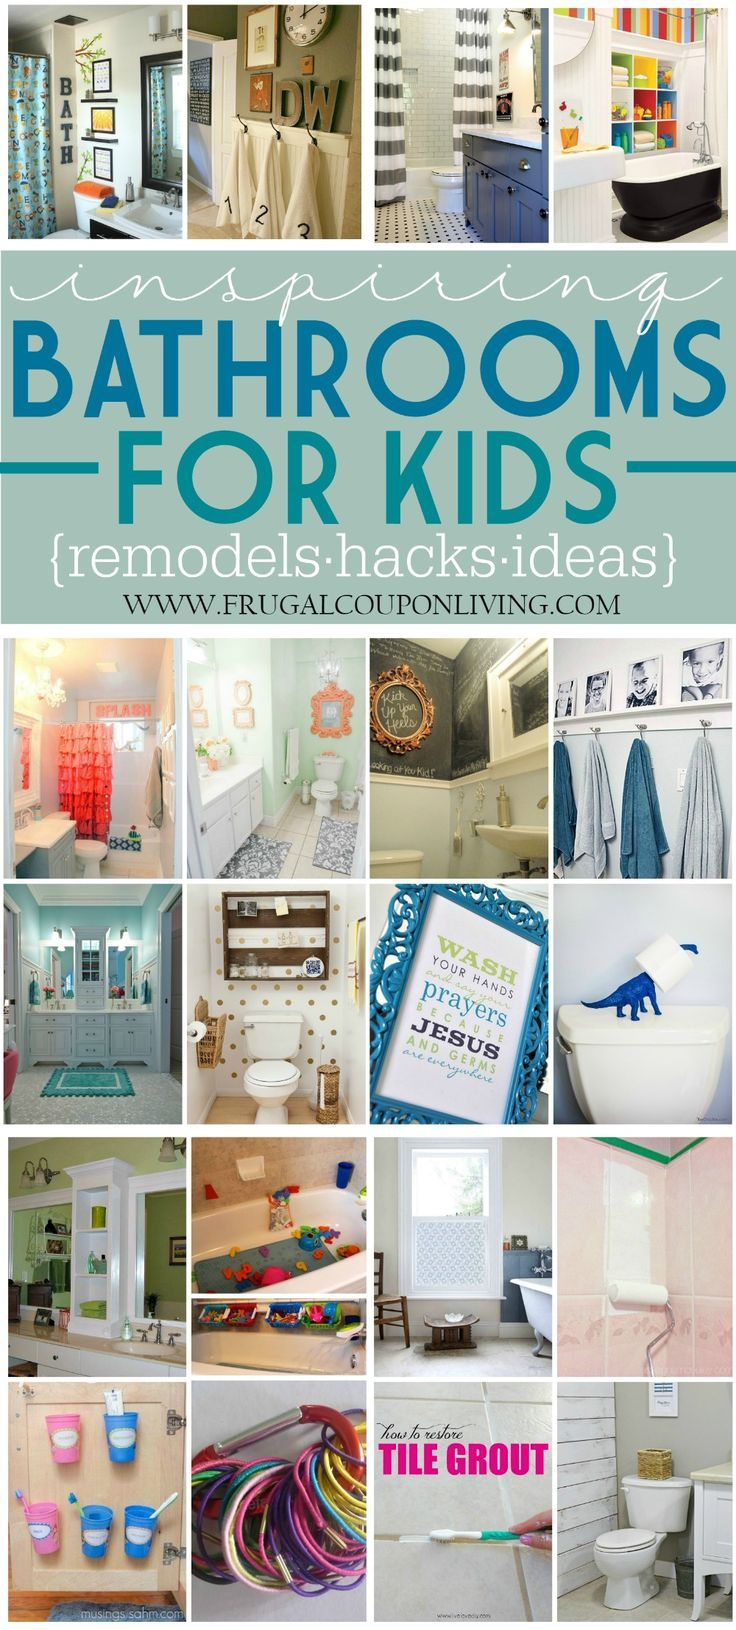 Bathroom Decorating Ideas For Toddlers best 25+ baby bathroom ideas on pinterest | canvas pictures, kid